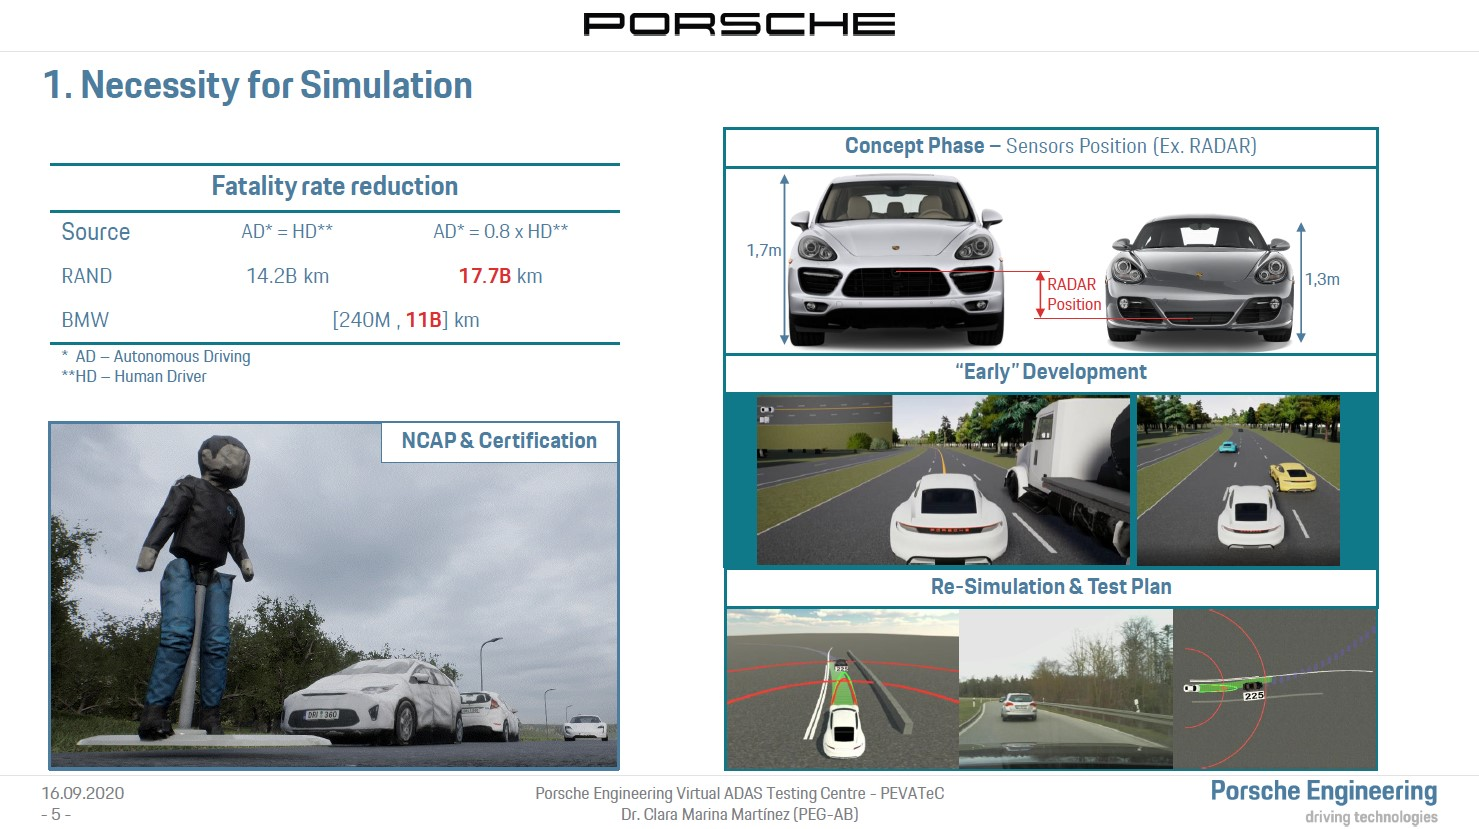 ADAS/AD virtual platform for end-to-end software development and testing